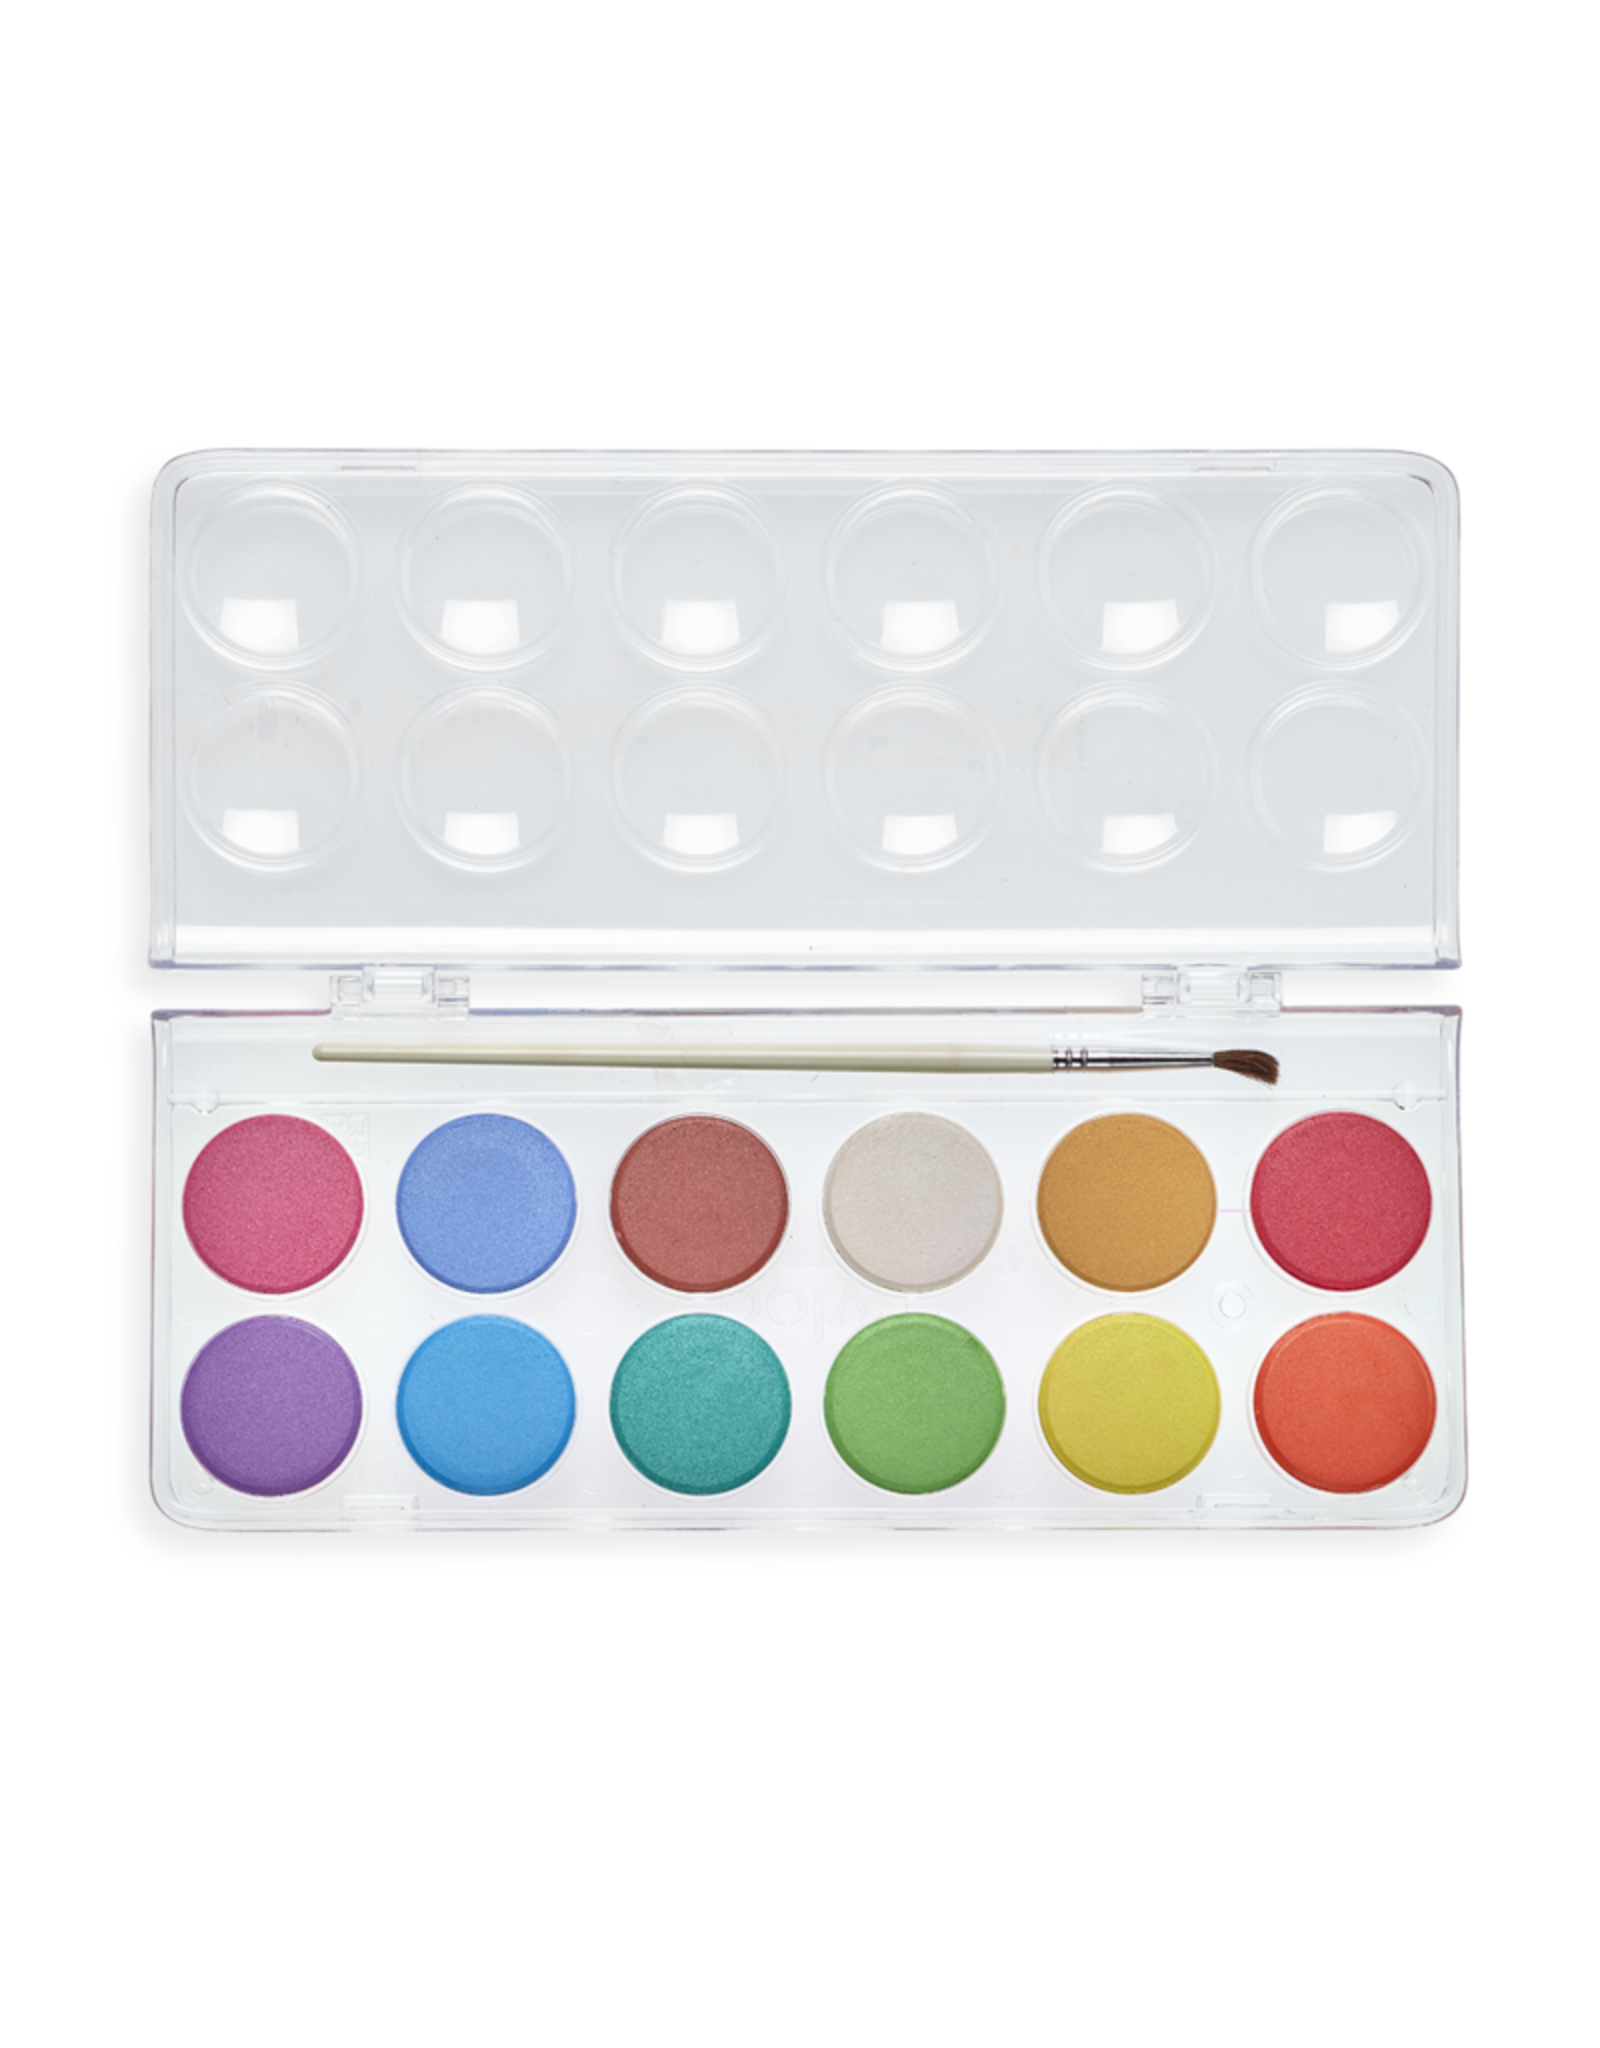 Ooly Chroma Blends Watercolor 13pc Paint Set - Pearlescent